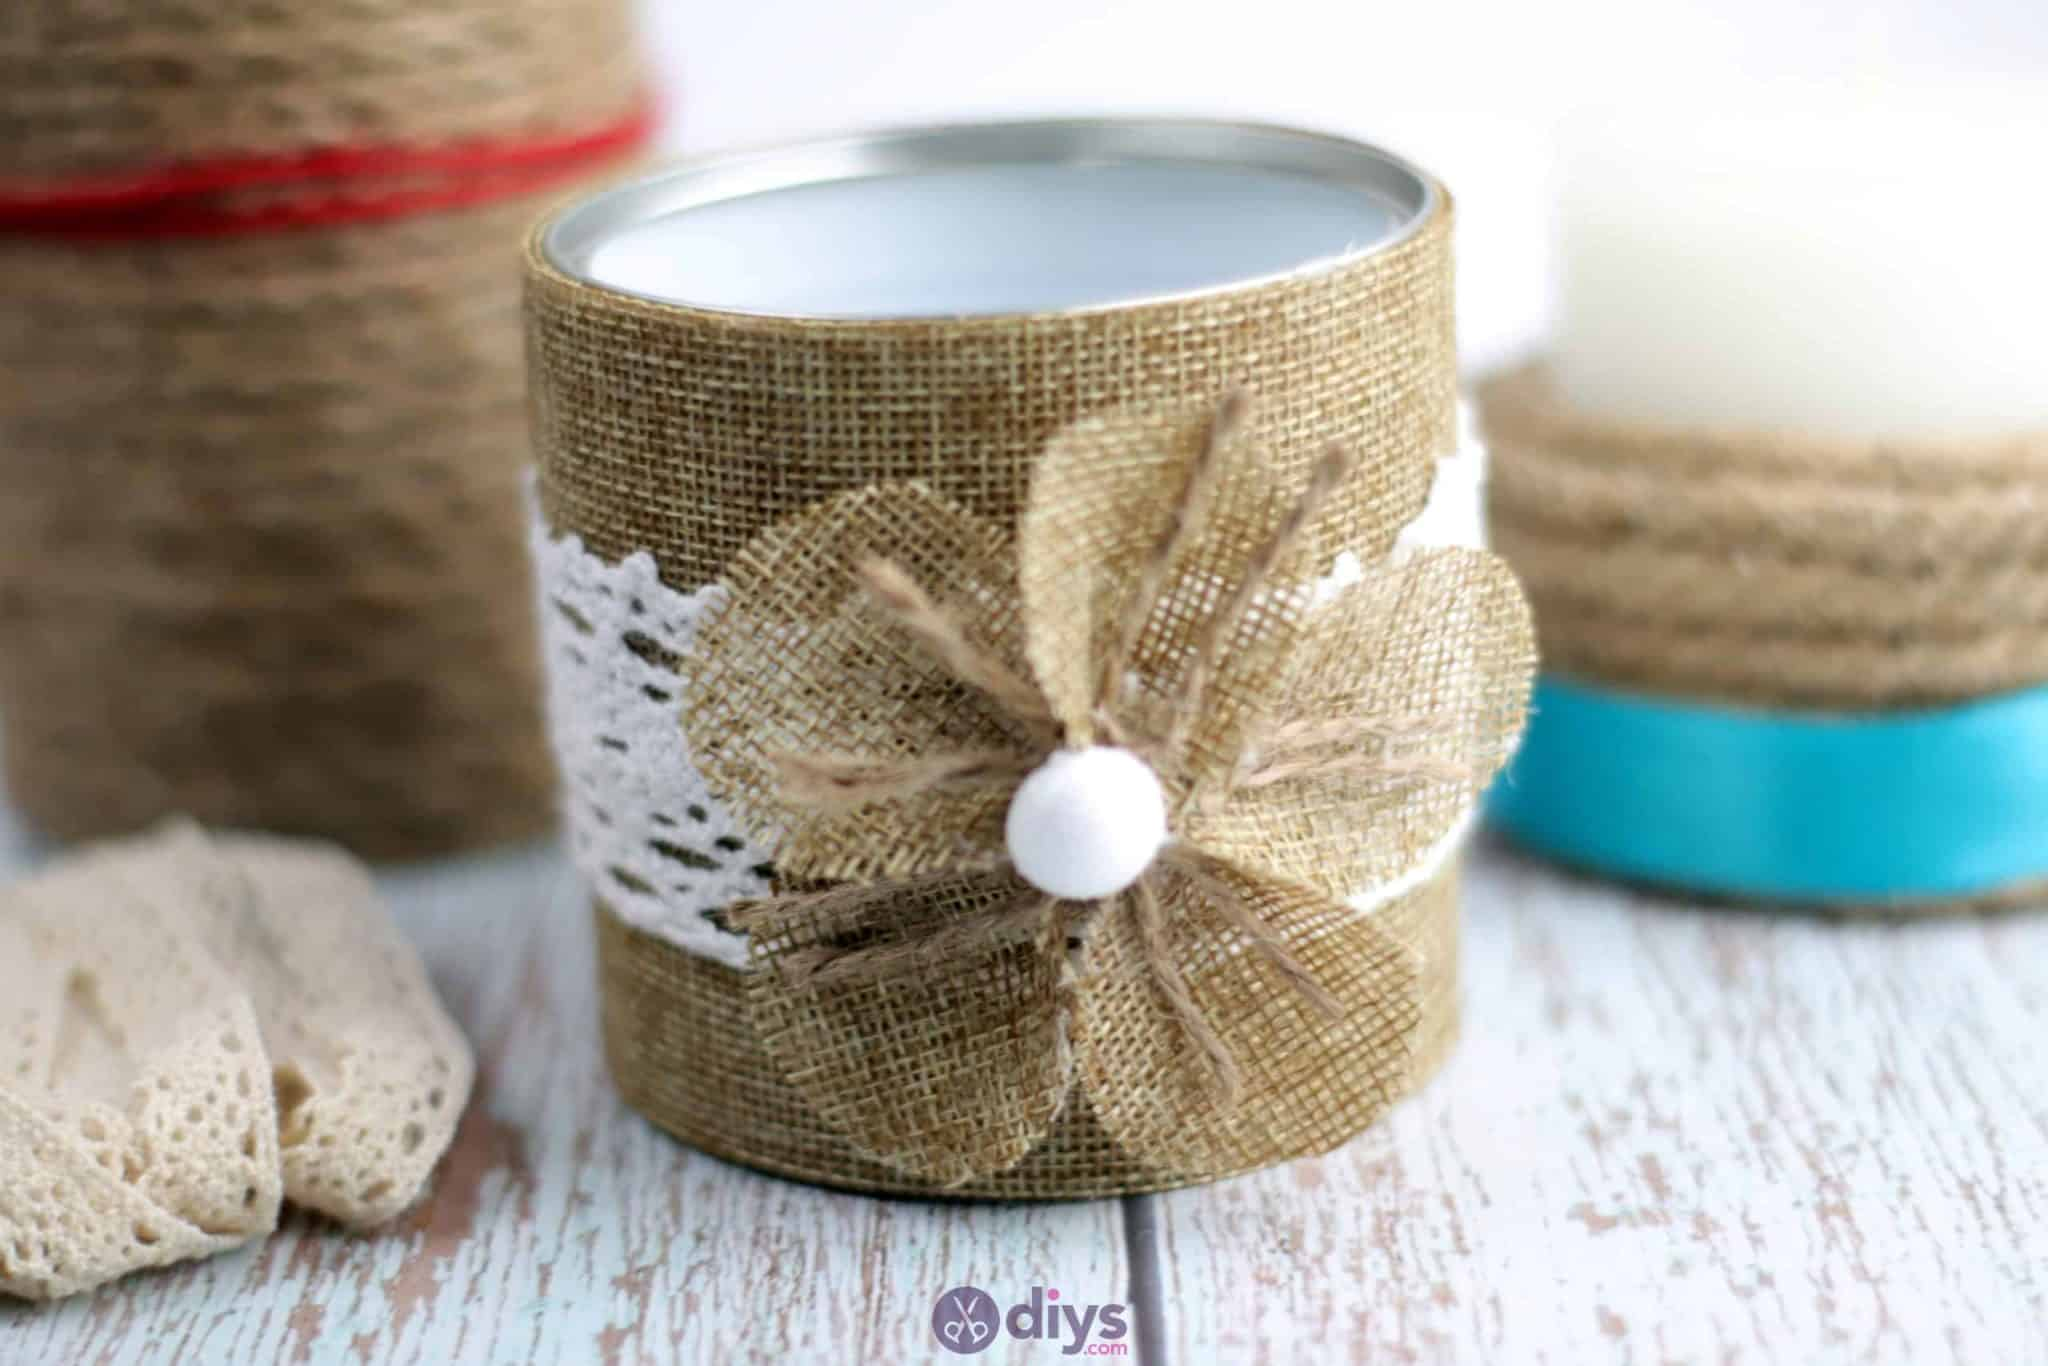 Diy rustic tin can container step 13 2048x1366